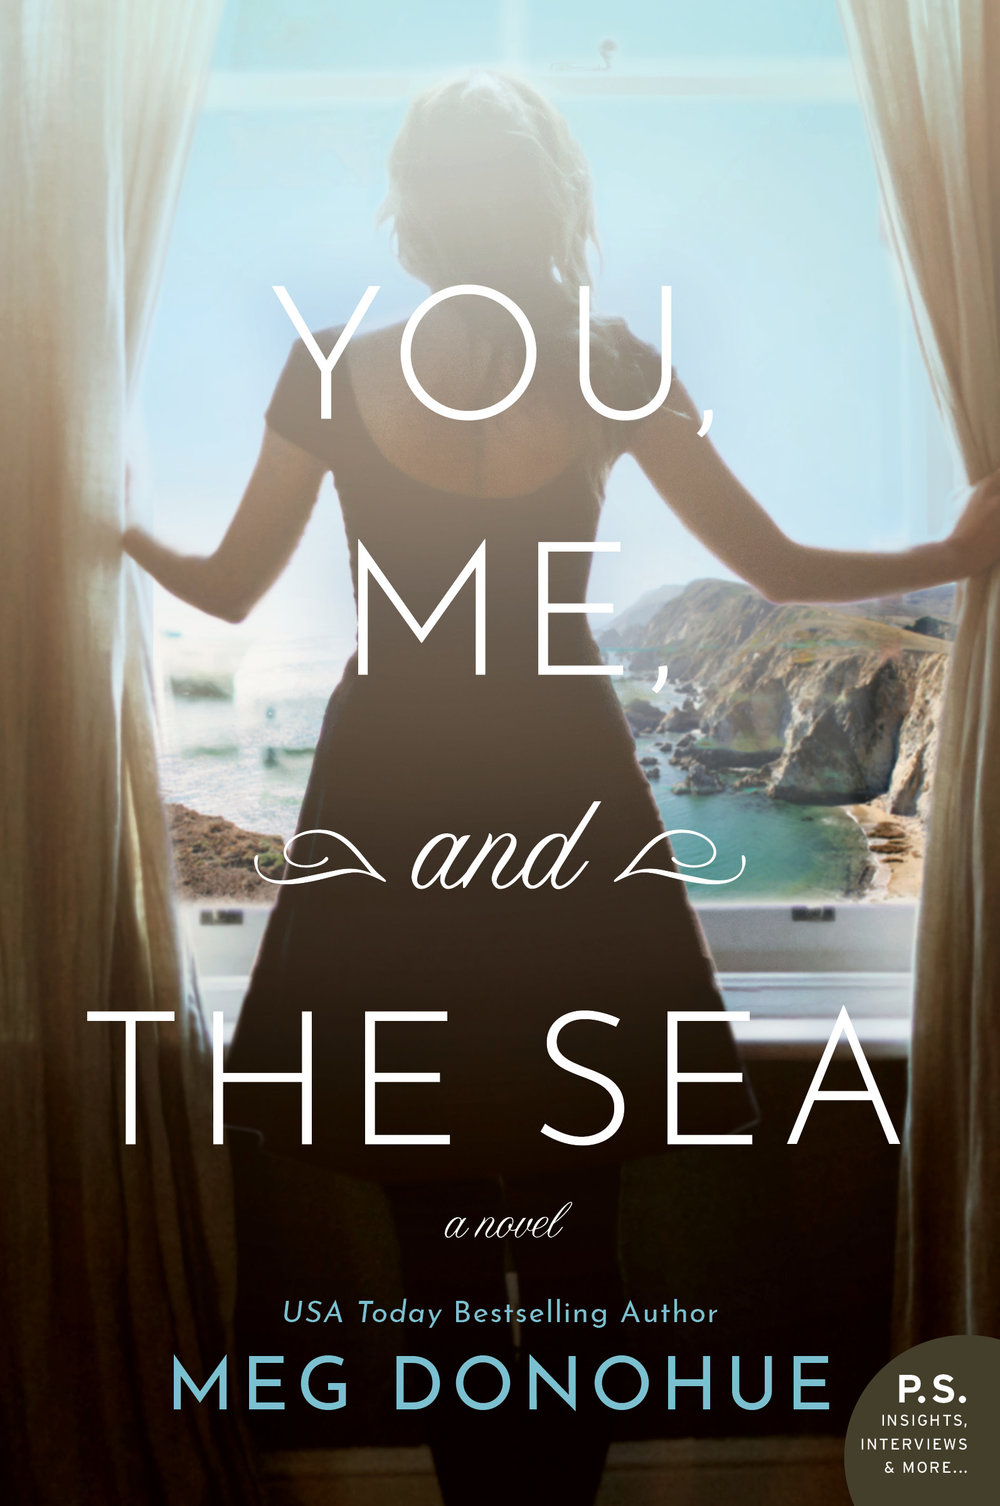 You, Me, and the Sea  by Meg Donohue  William Morrow —- May 7, 2019